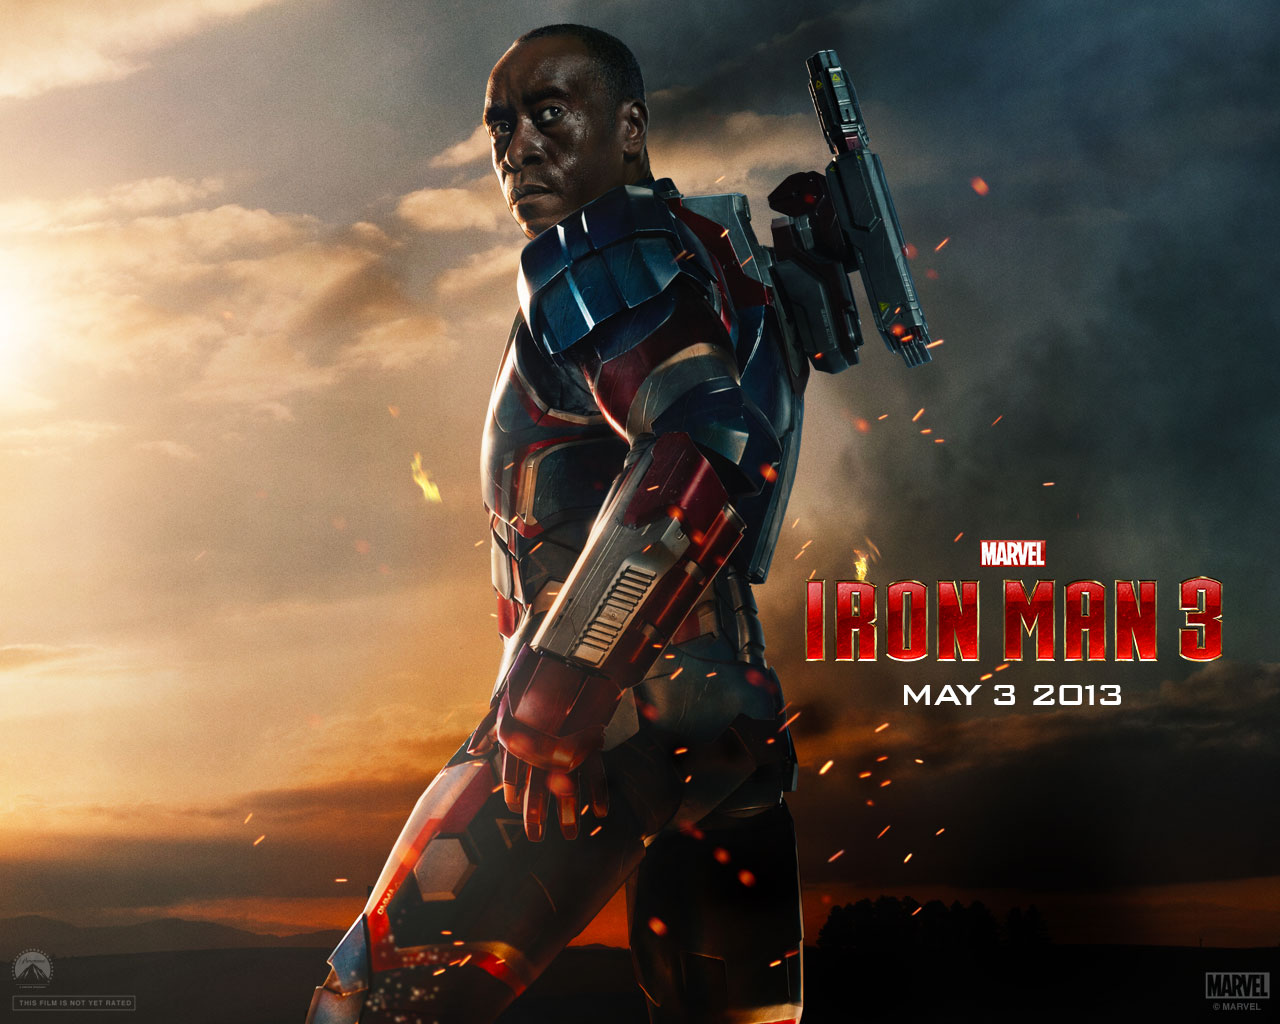 Iron Man 3 wallpaper 1280x1024 006